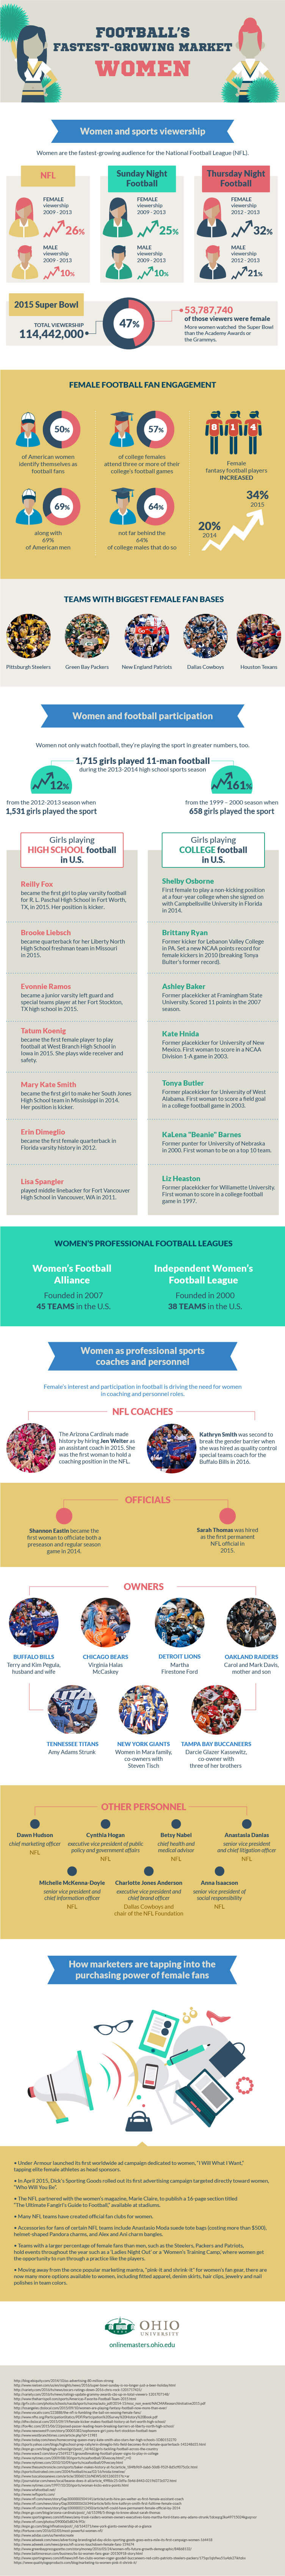 OU-MCE Women Football